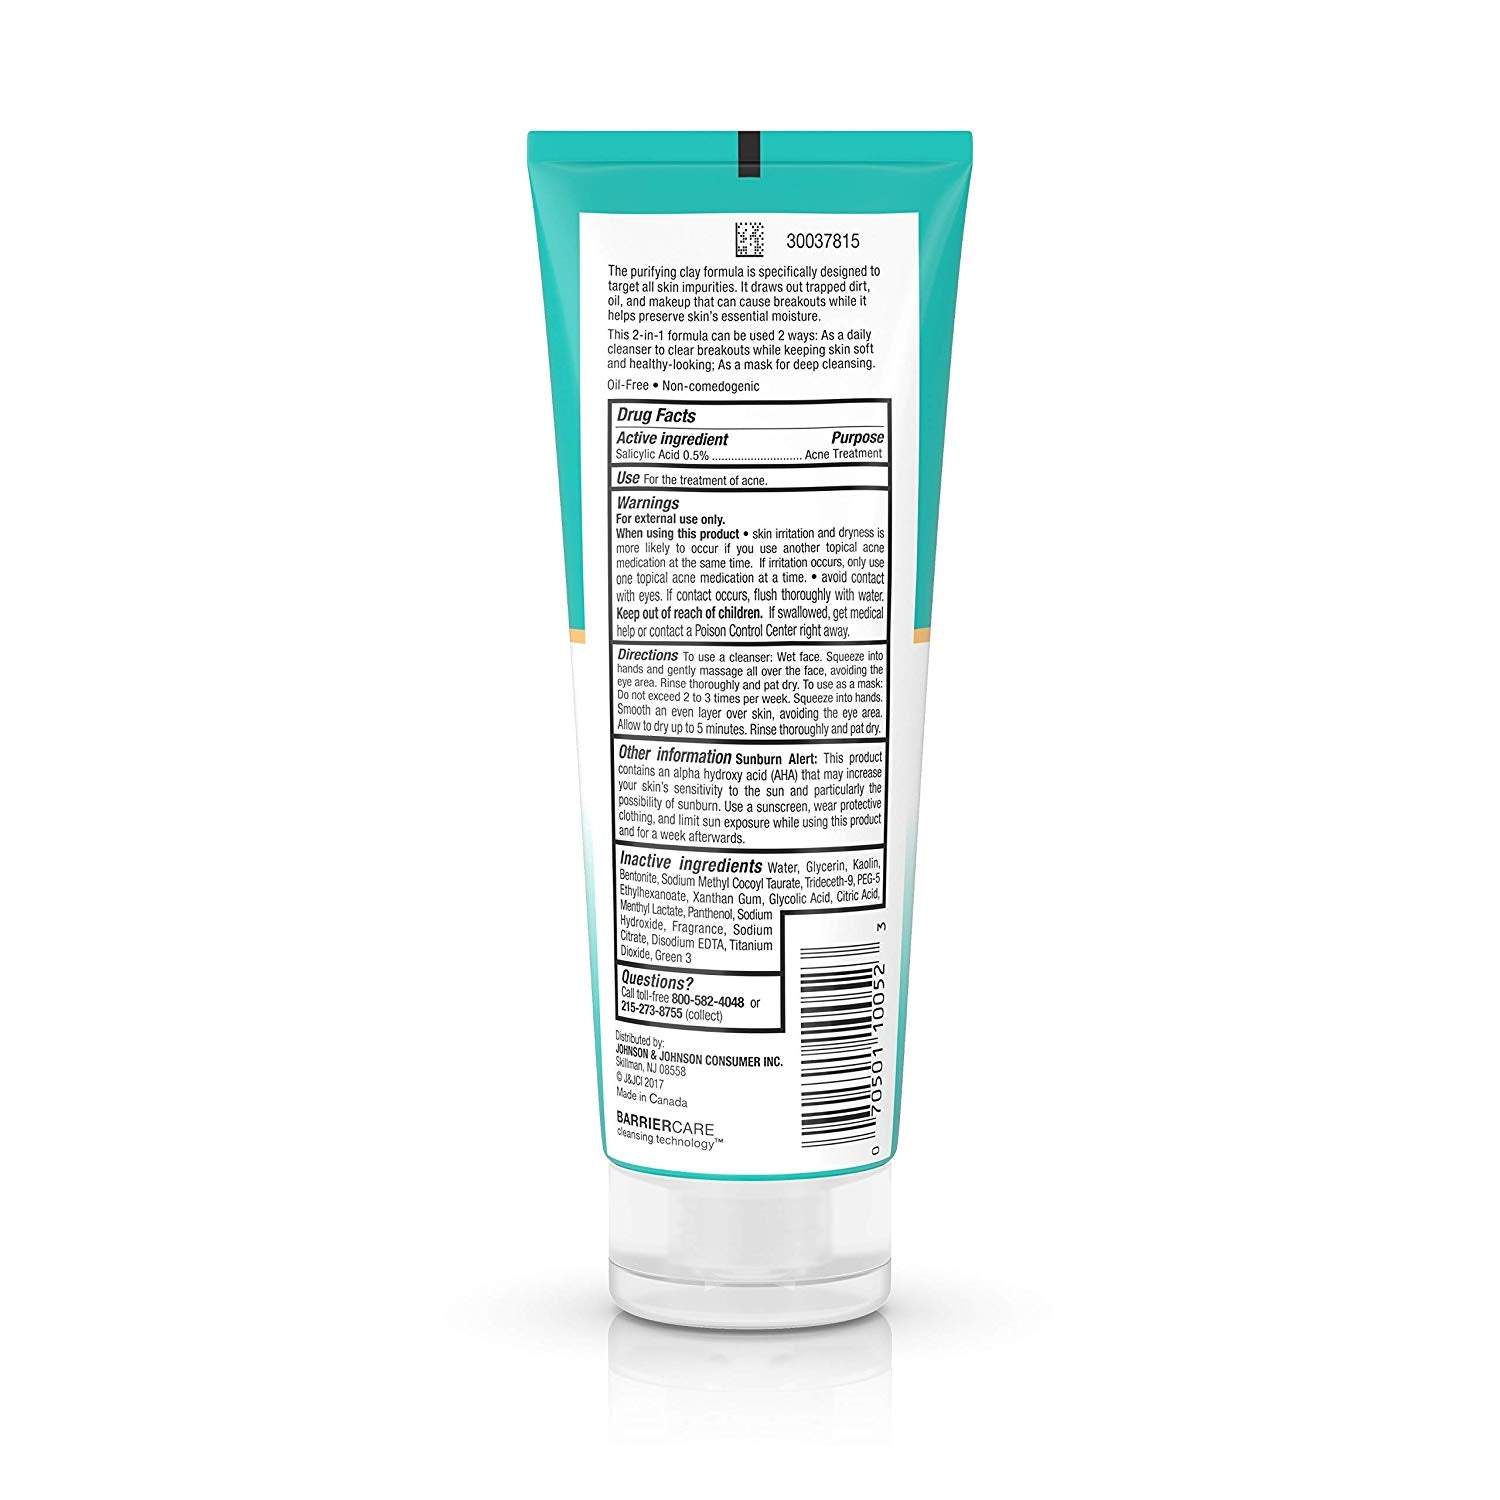 Neutrogena Deep Clean Purifying Clay Face Mask